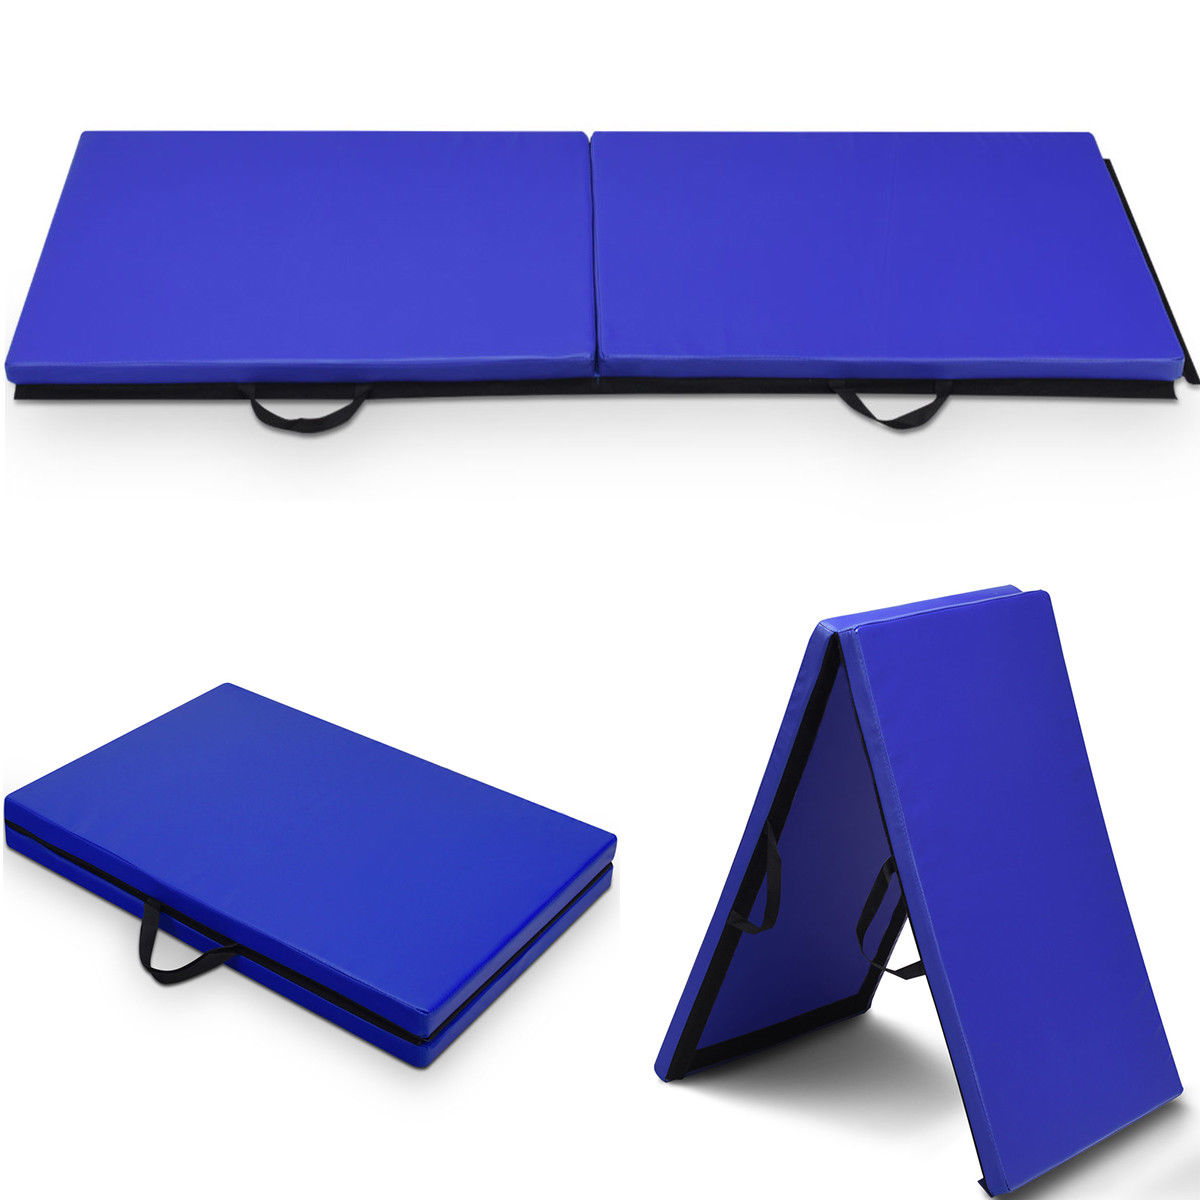 Costway 6'x 2' Gymnastics Mat Thick Two Folding Panel Gym Fitness Exercise Blue